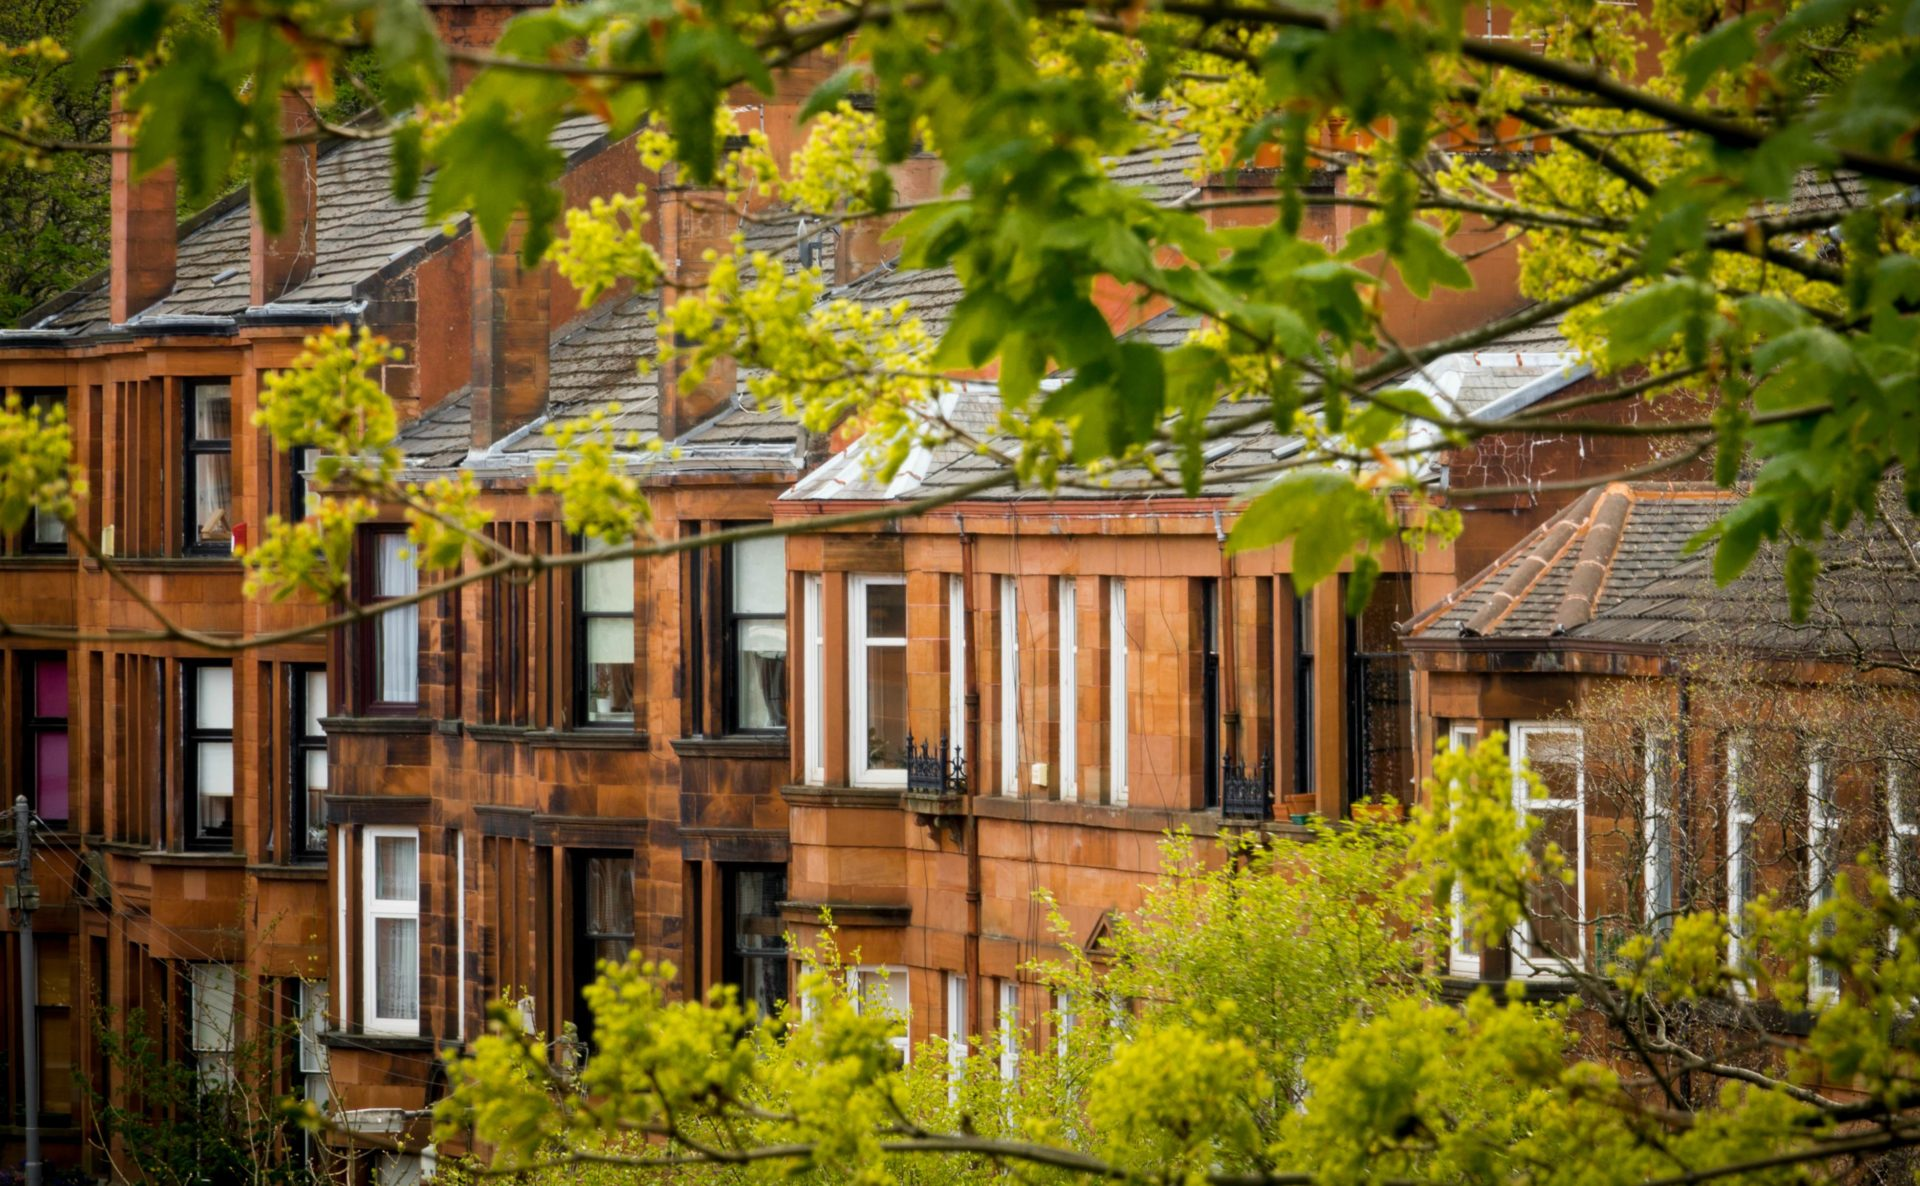 Sandstone terraces in Glasgow – a typical kind of property for those considering where to buy property in the UK